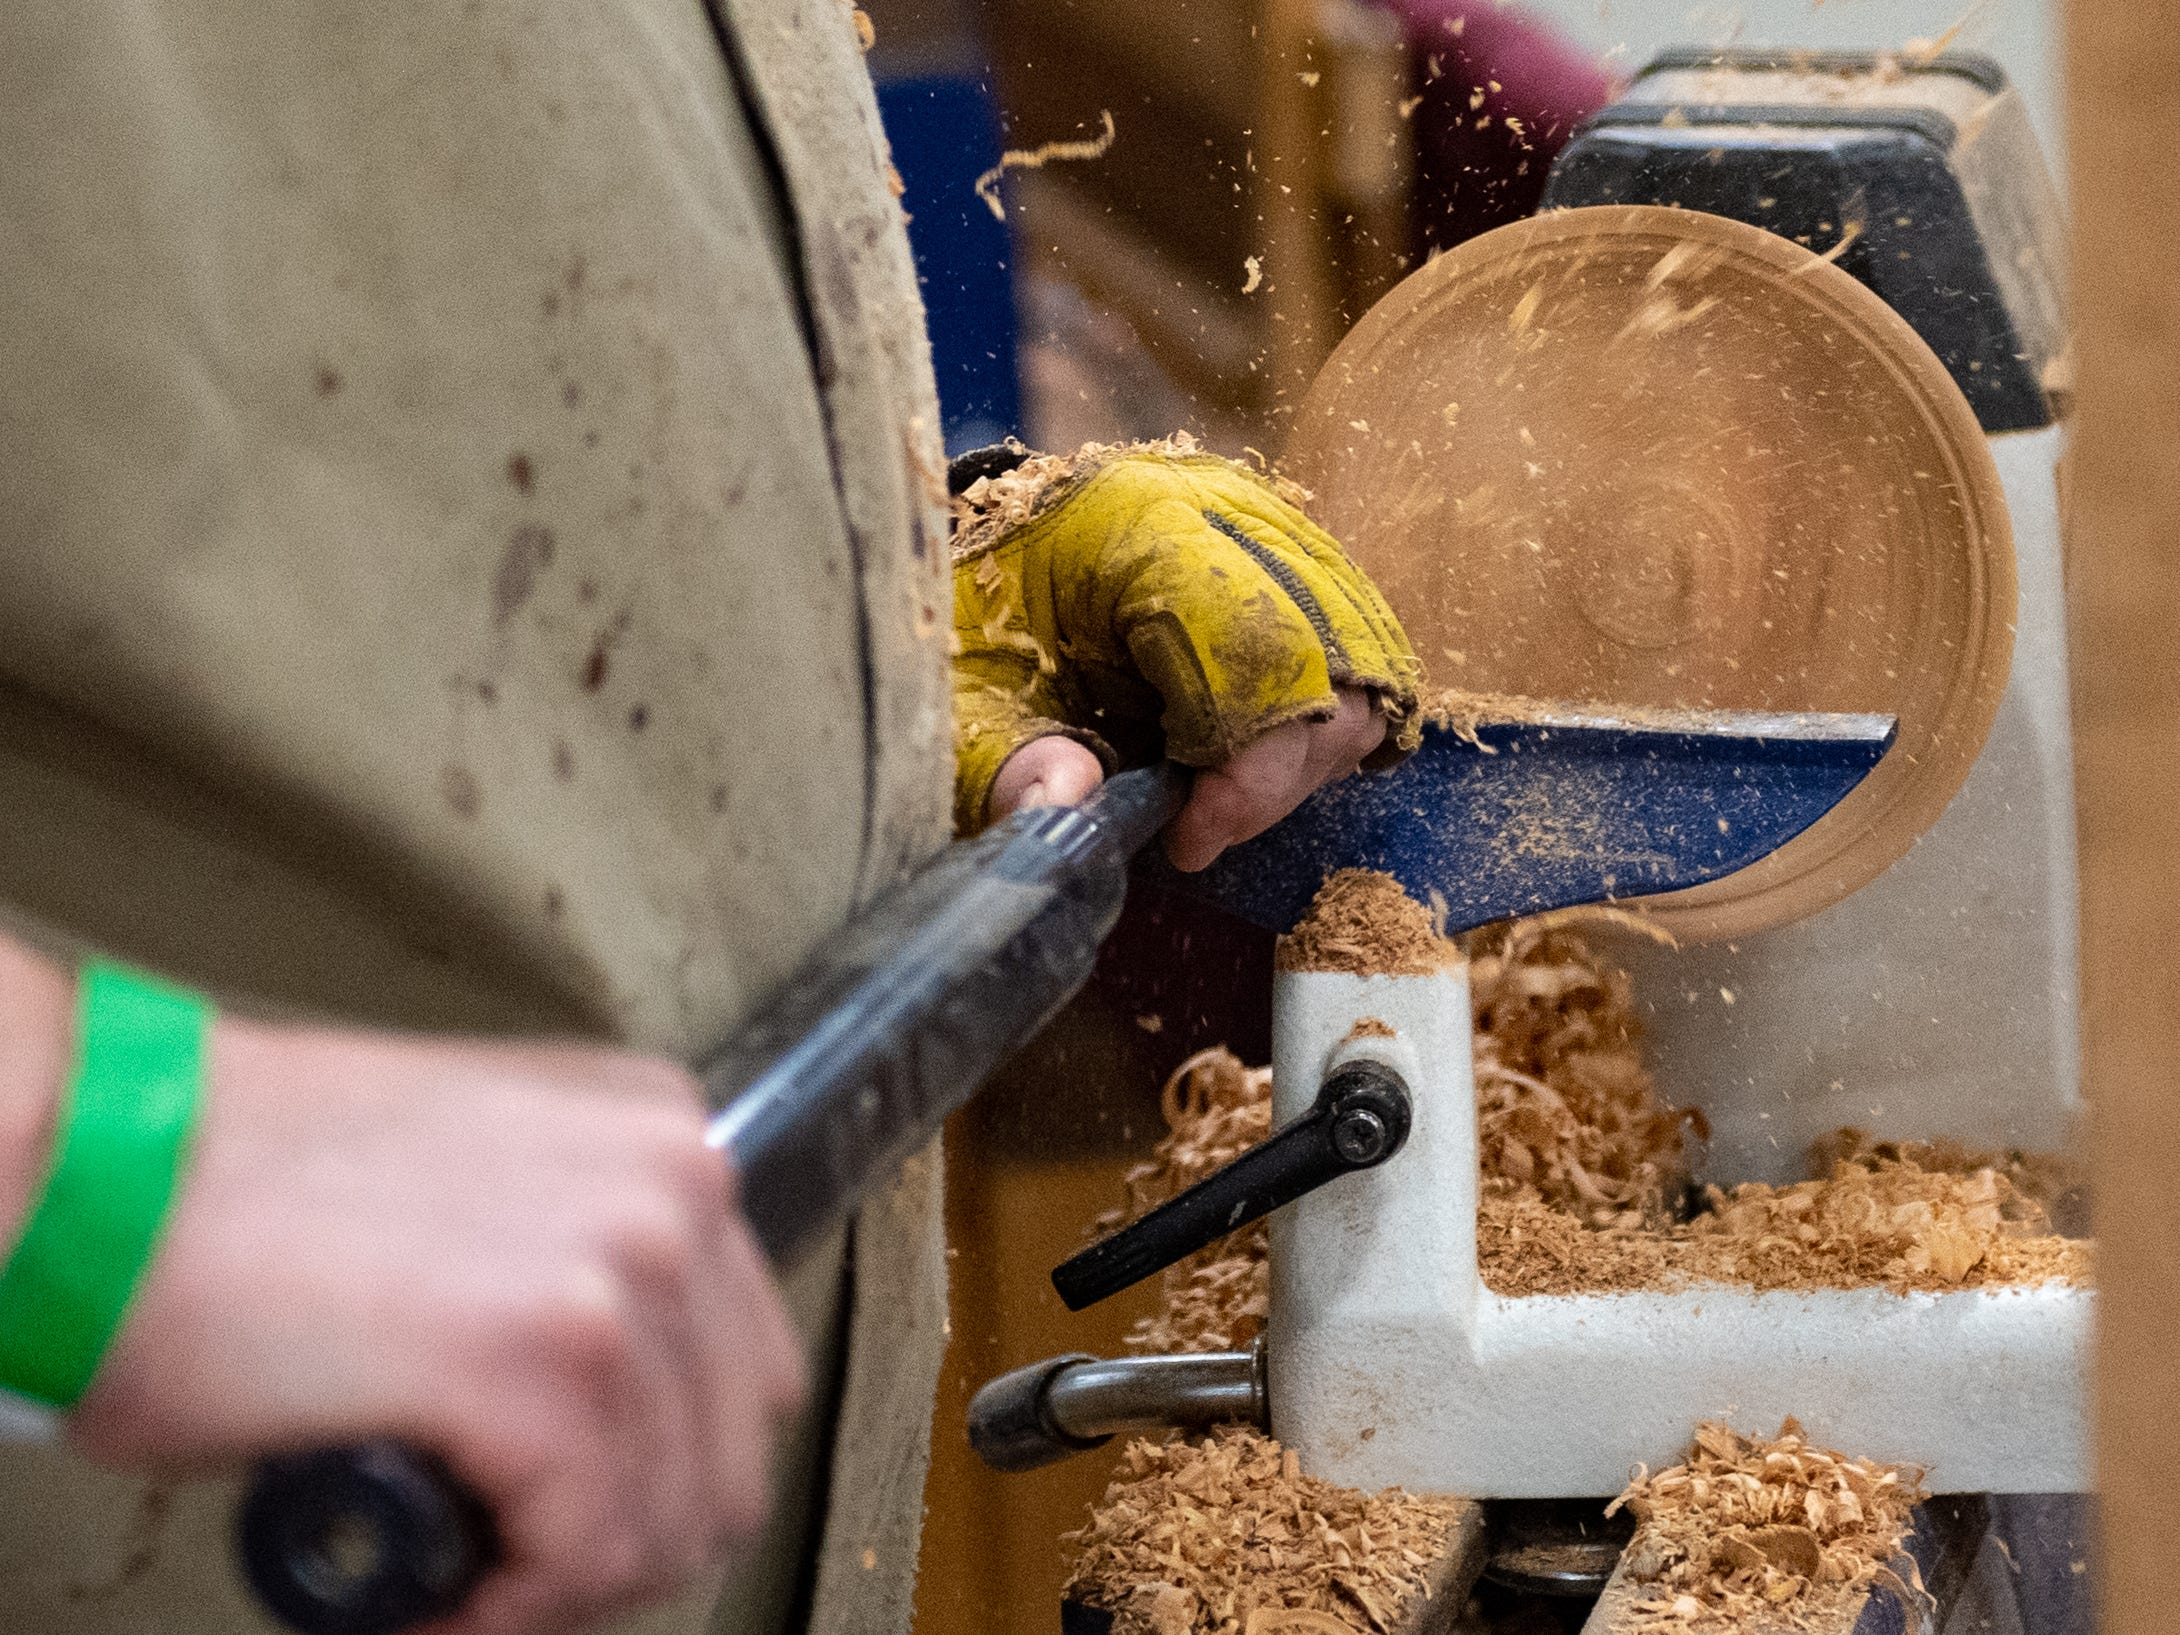 Artisans shape wood into bowls, figurines and other trinkets  during the 2019 Home & Garden Show, February 8, 2019.